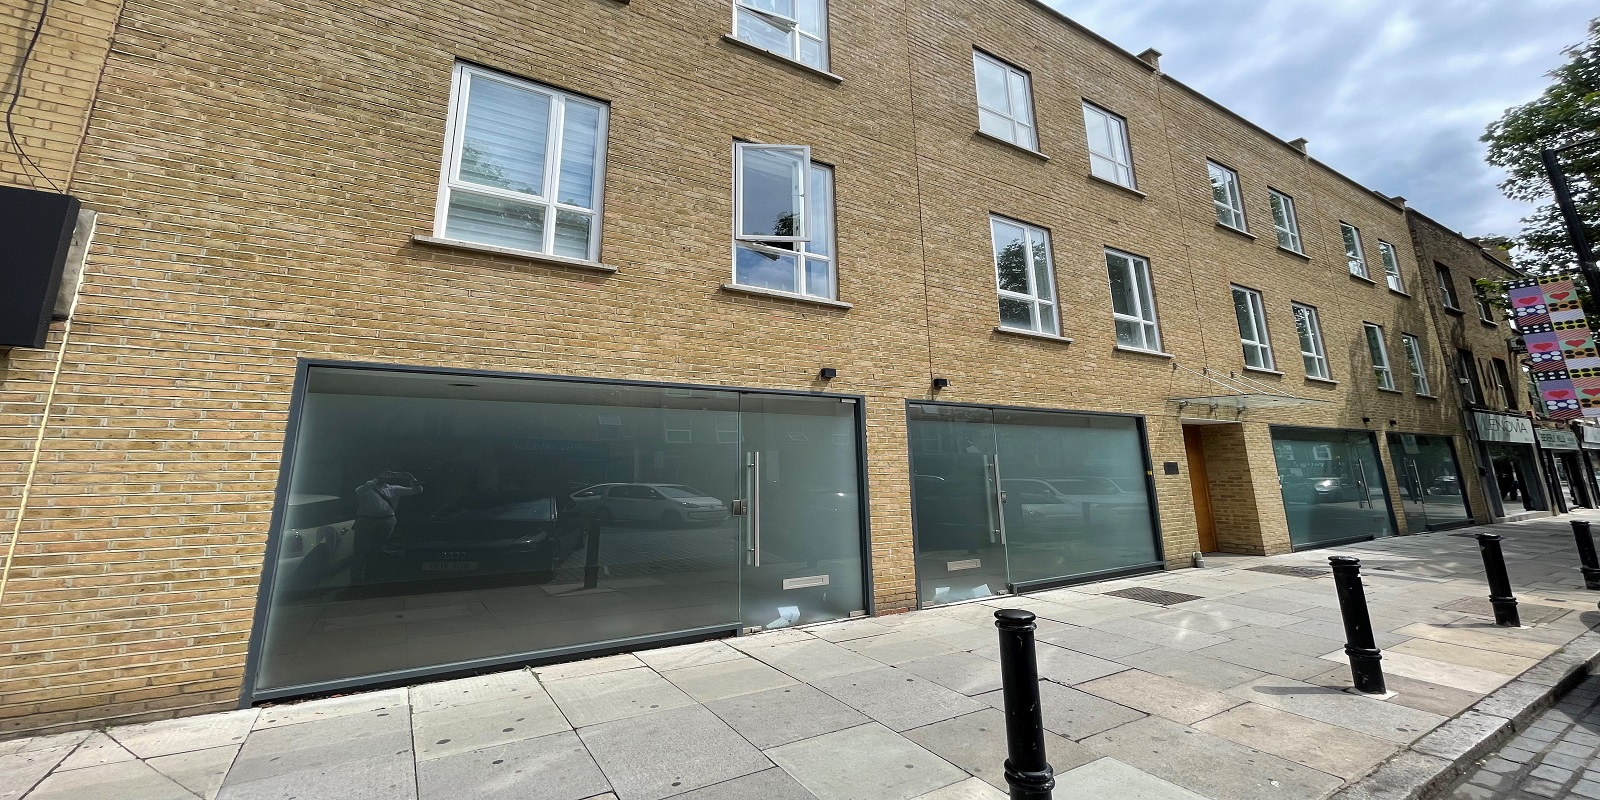 NEW DEVELOPMENT OF SHOPS TO BE LET / FOR SALE